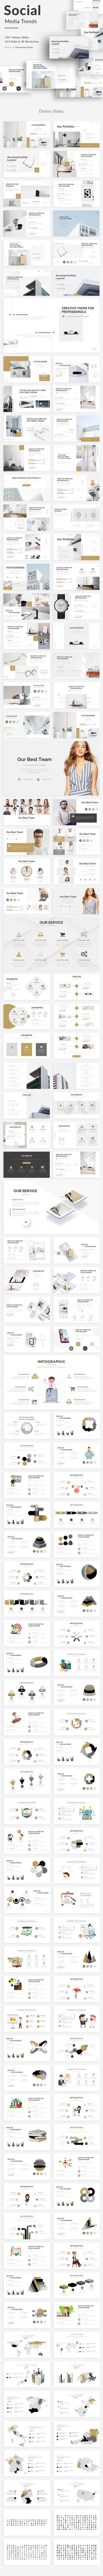 Social Media Trends Design Powerpoint Template - Creative PowerPoint Templates